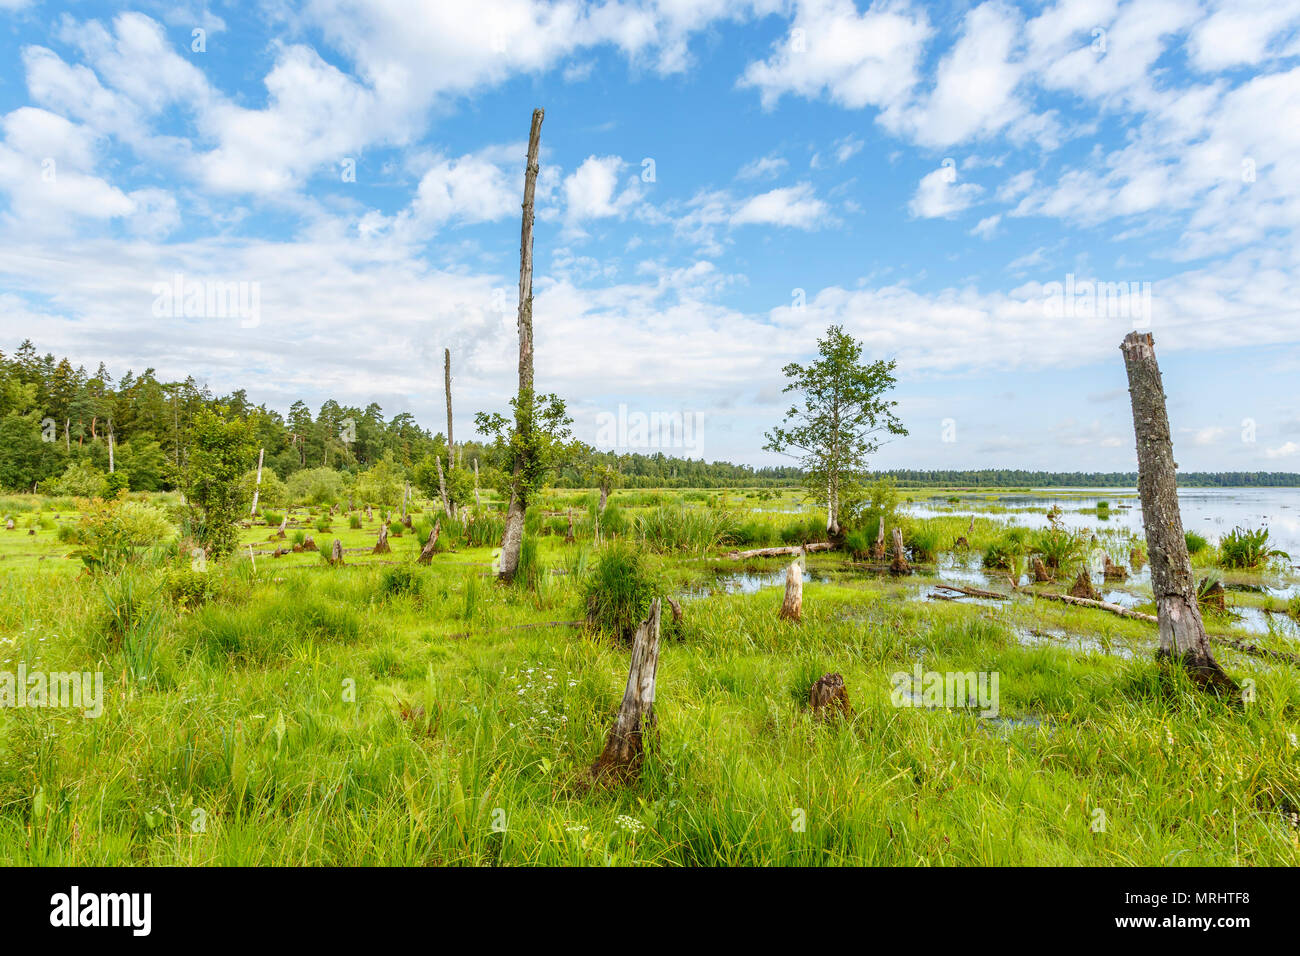 Wetland at a lake with dead trees and stumps Stock Photo